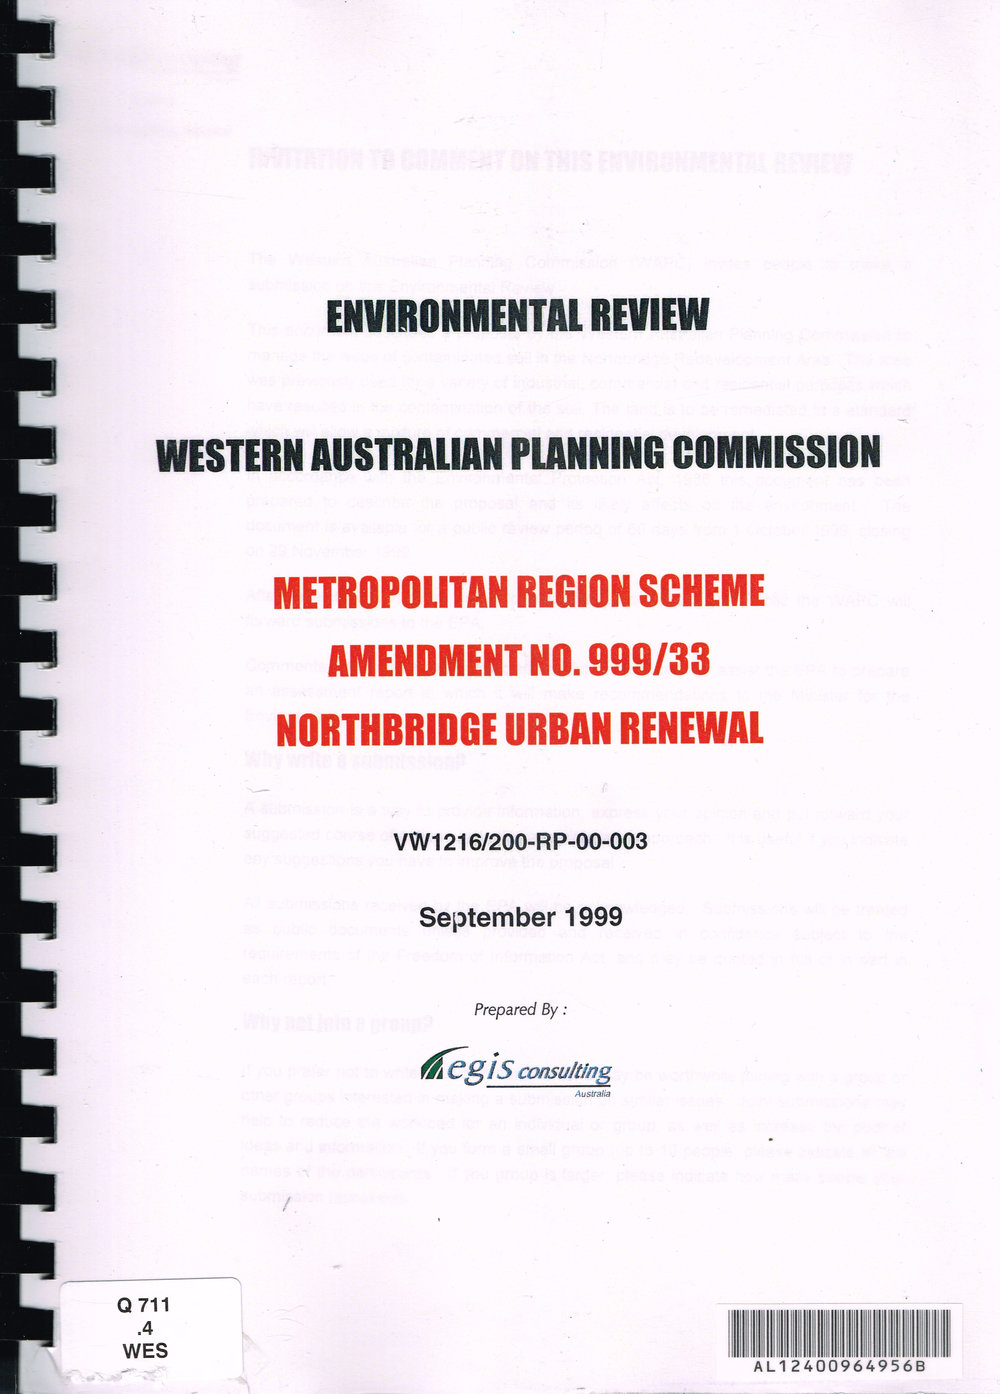 Environmental Review Western Australian Planning Commission : Metropolitan Region Scheme Amendment No. 999/33 Northbridge Urban Renewal September 1999  Egis Consulting